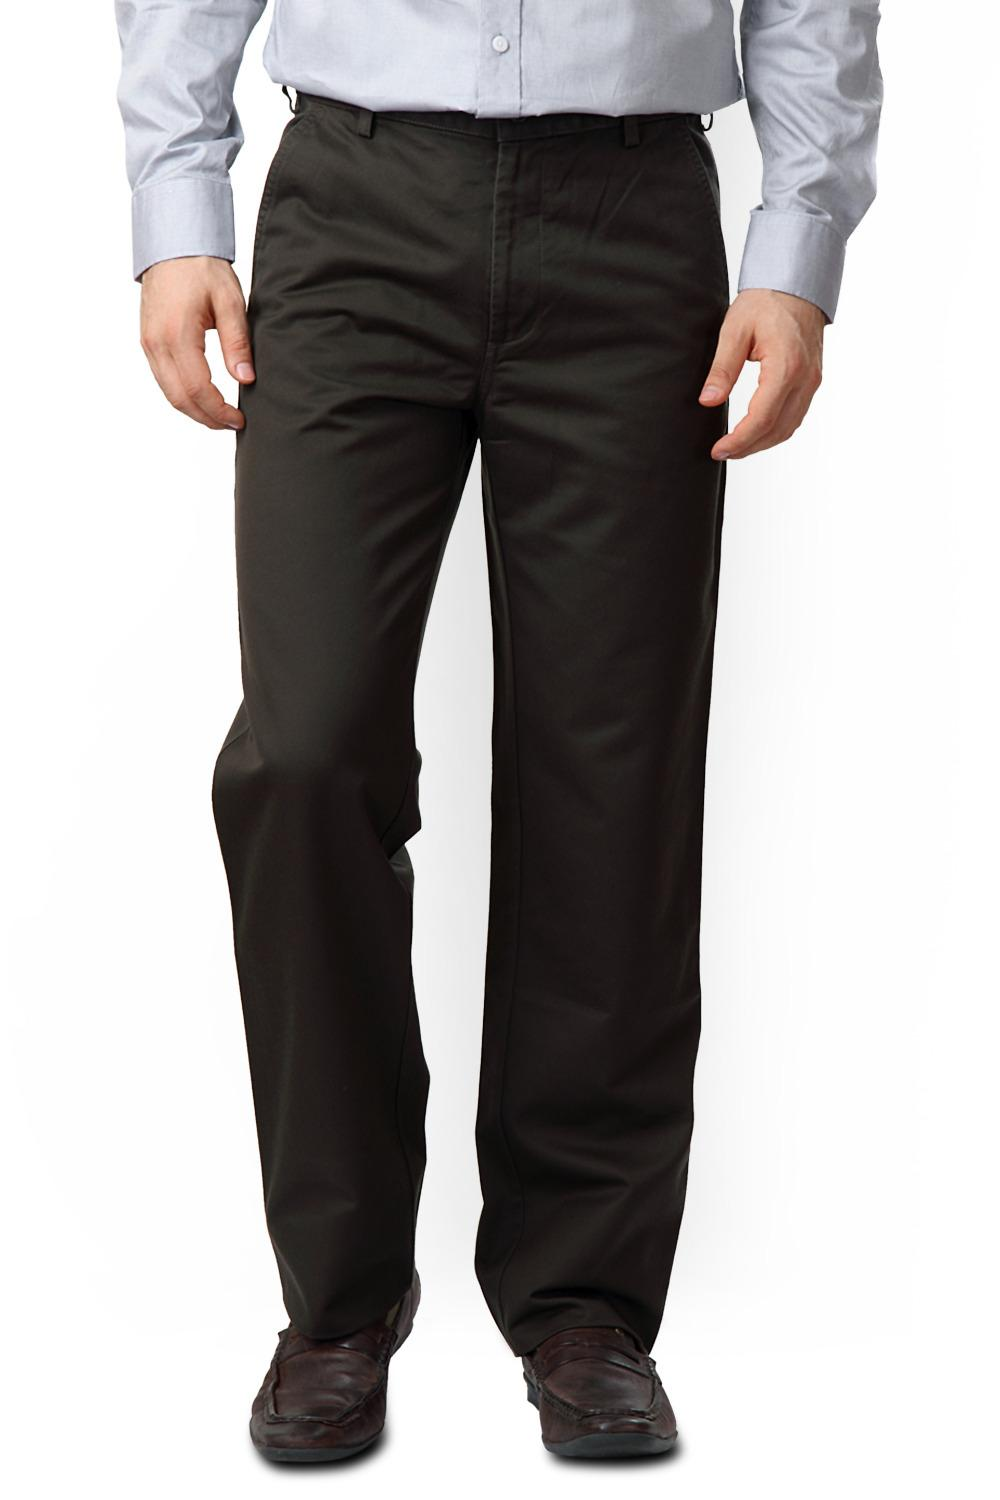 2019 factory price outlet great look Allen Solly Trousers & Chinos, Mid Rise Flat Front Trousers for Men at  Allensolly.com